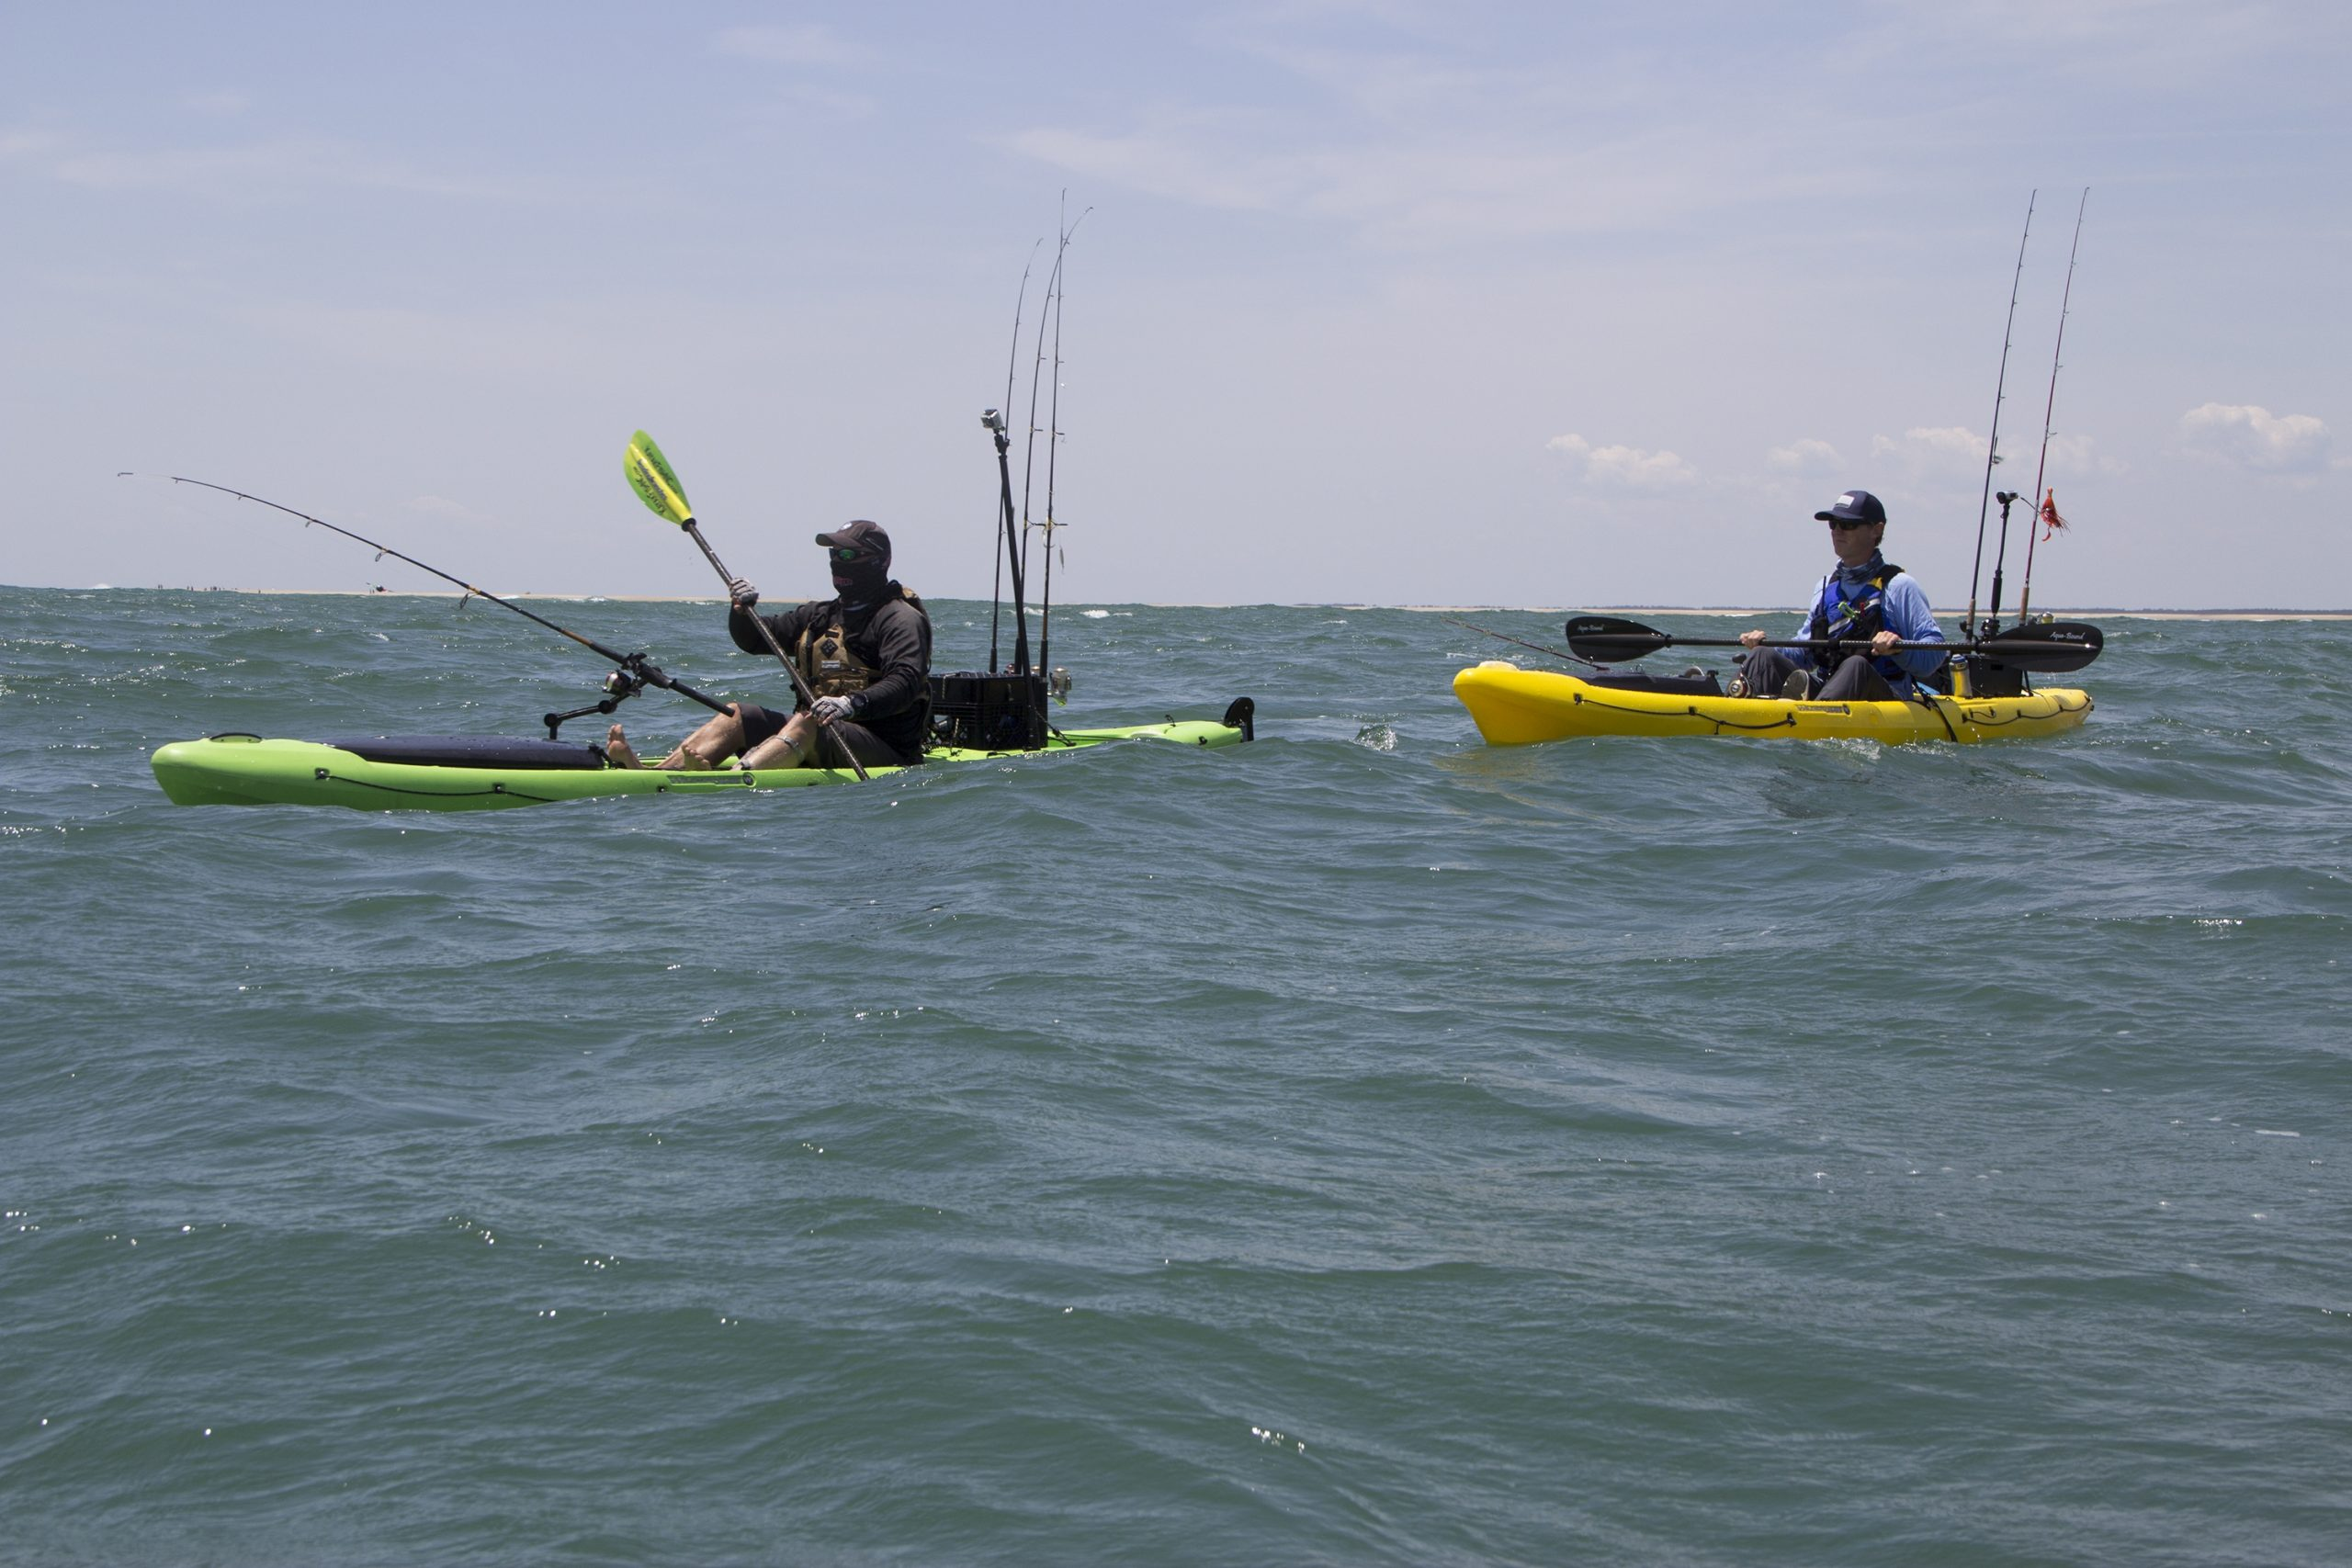 Wilderness System's new Thresher 140 (yellow) and 155 (green) cover the distance to catch the fish. Photo: Evan Lyendecker